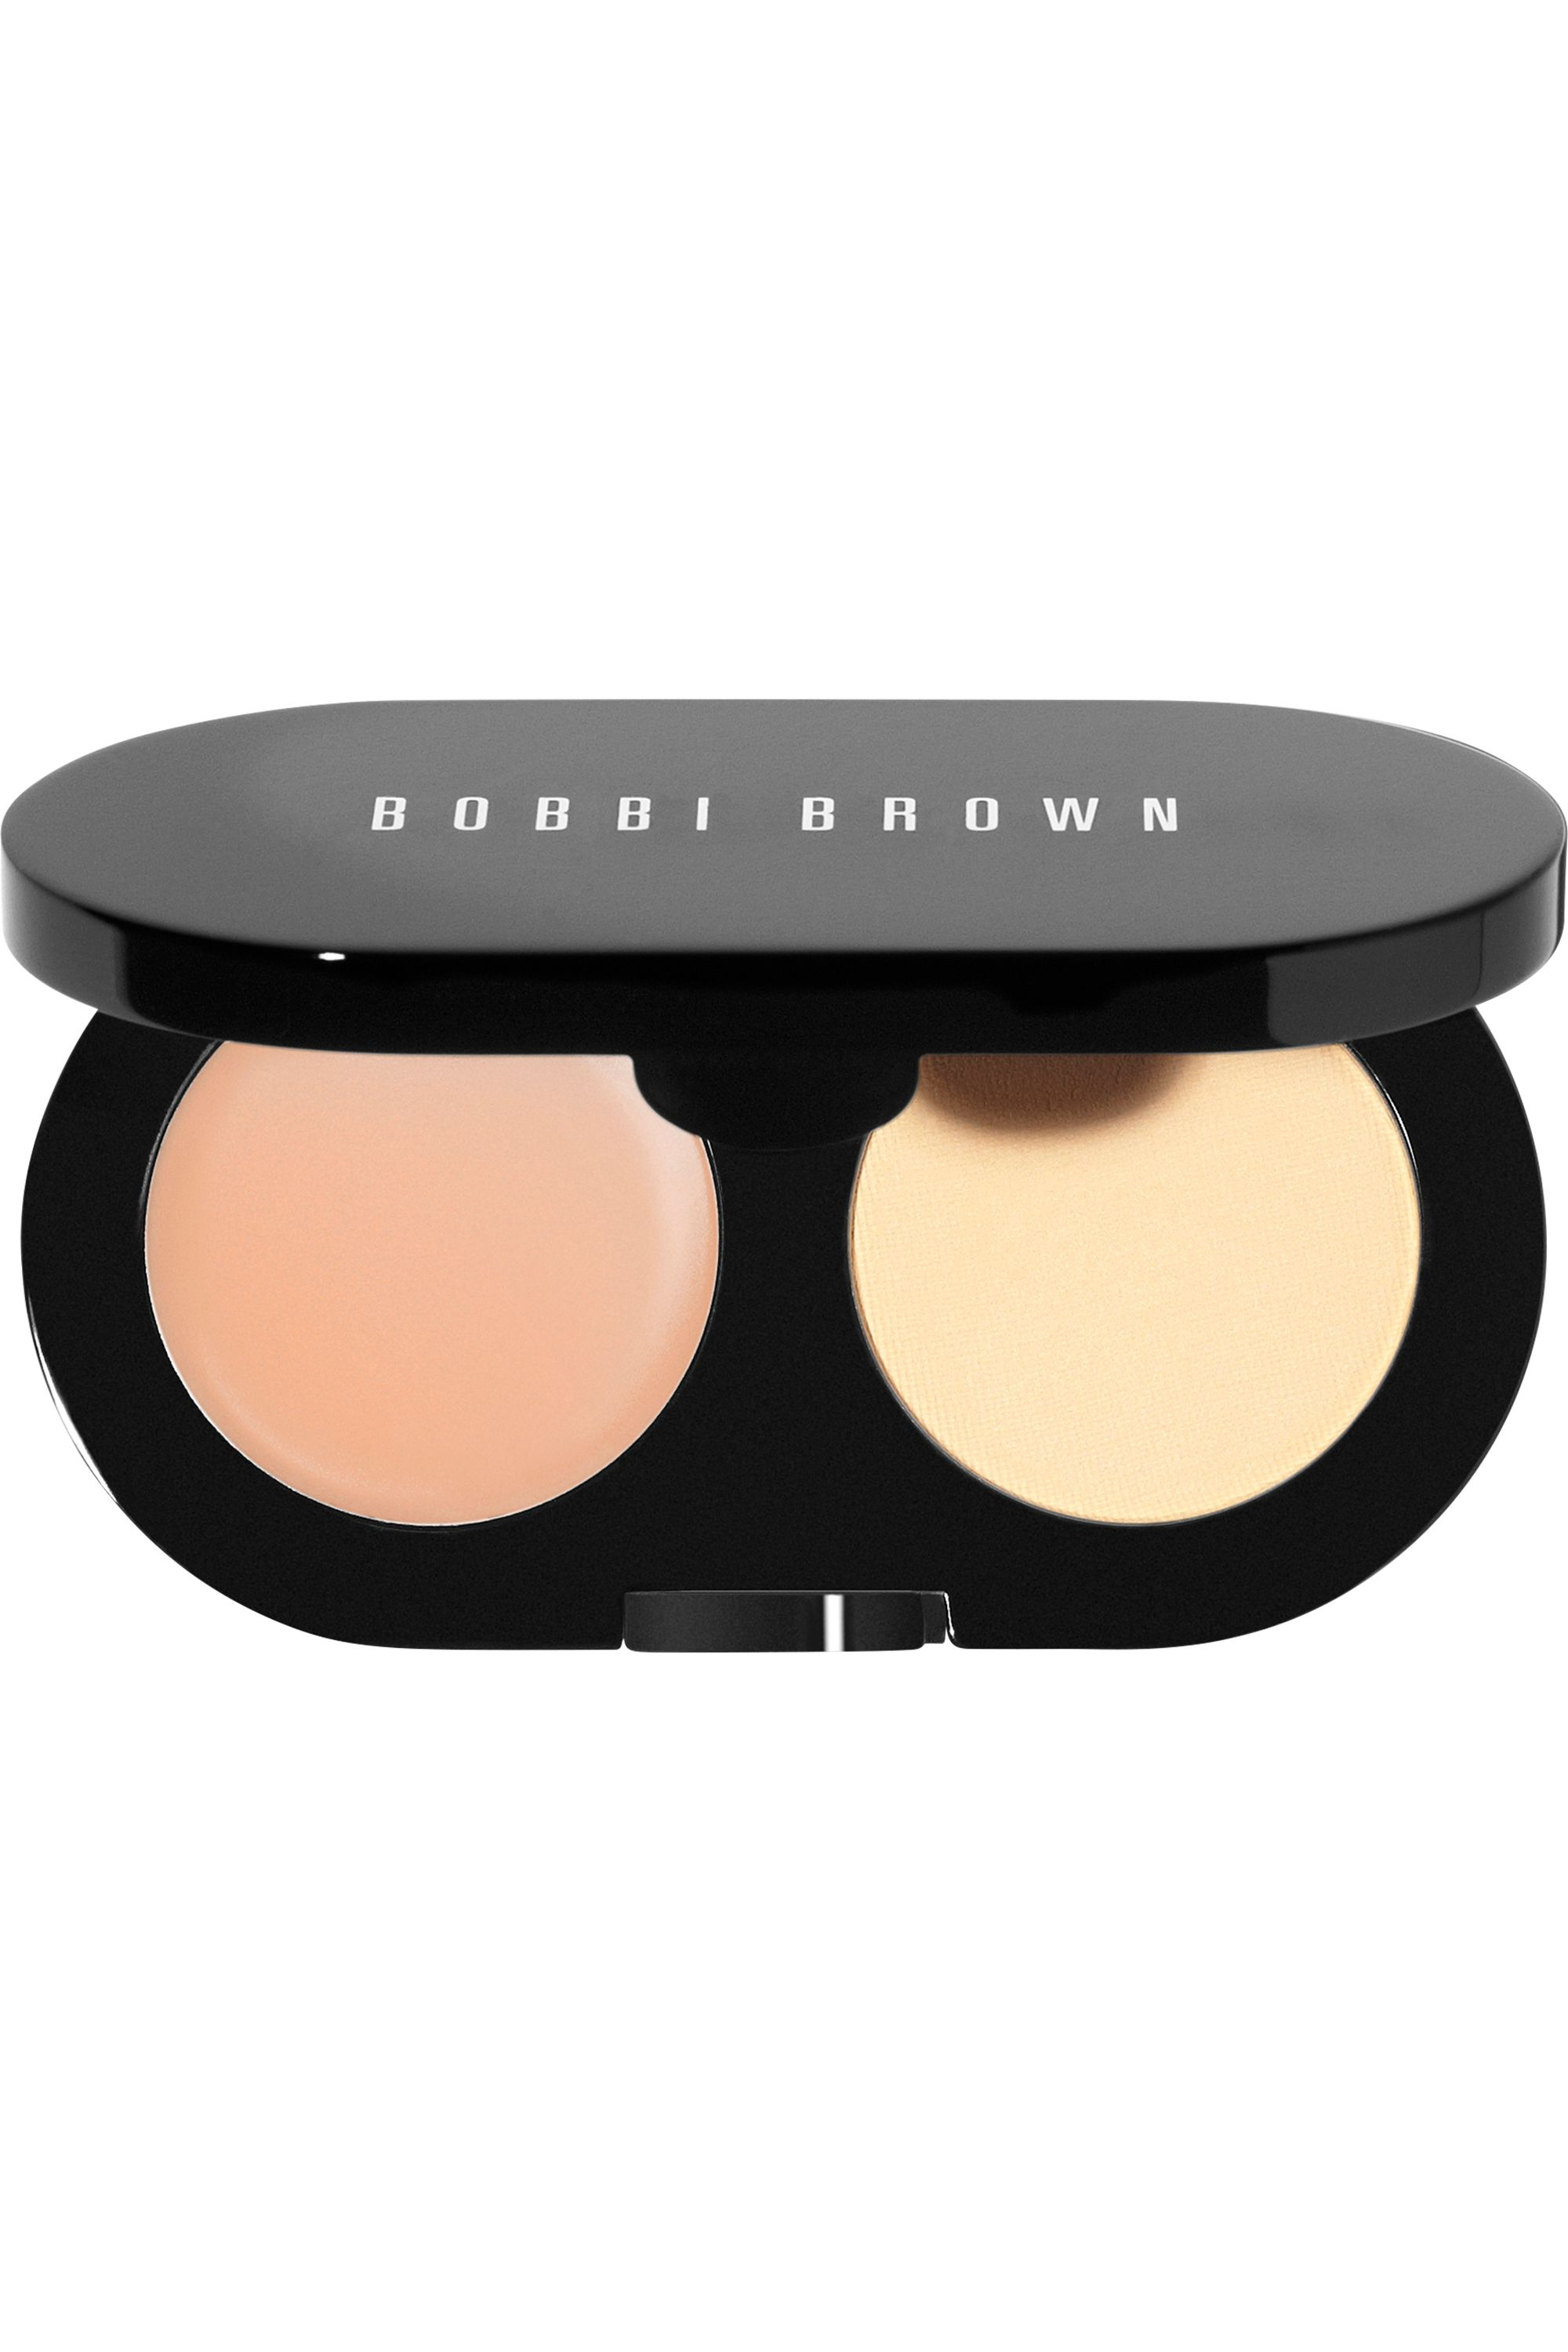 Blissim : Bobbi Brown - Kit anti-cernes Creamy Concealer Kit - Warm Ivory